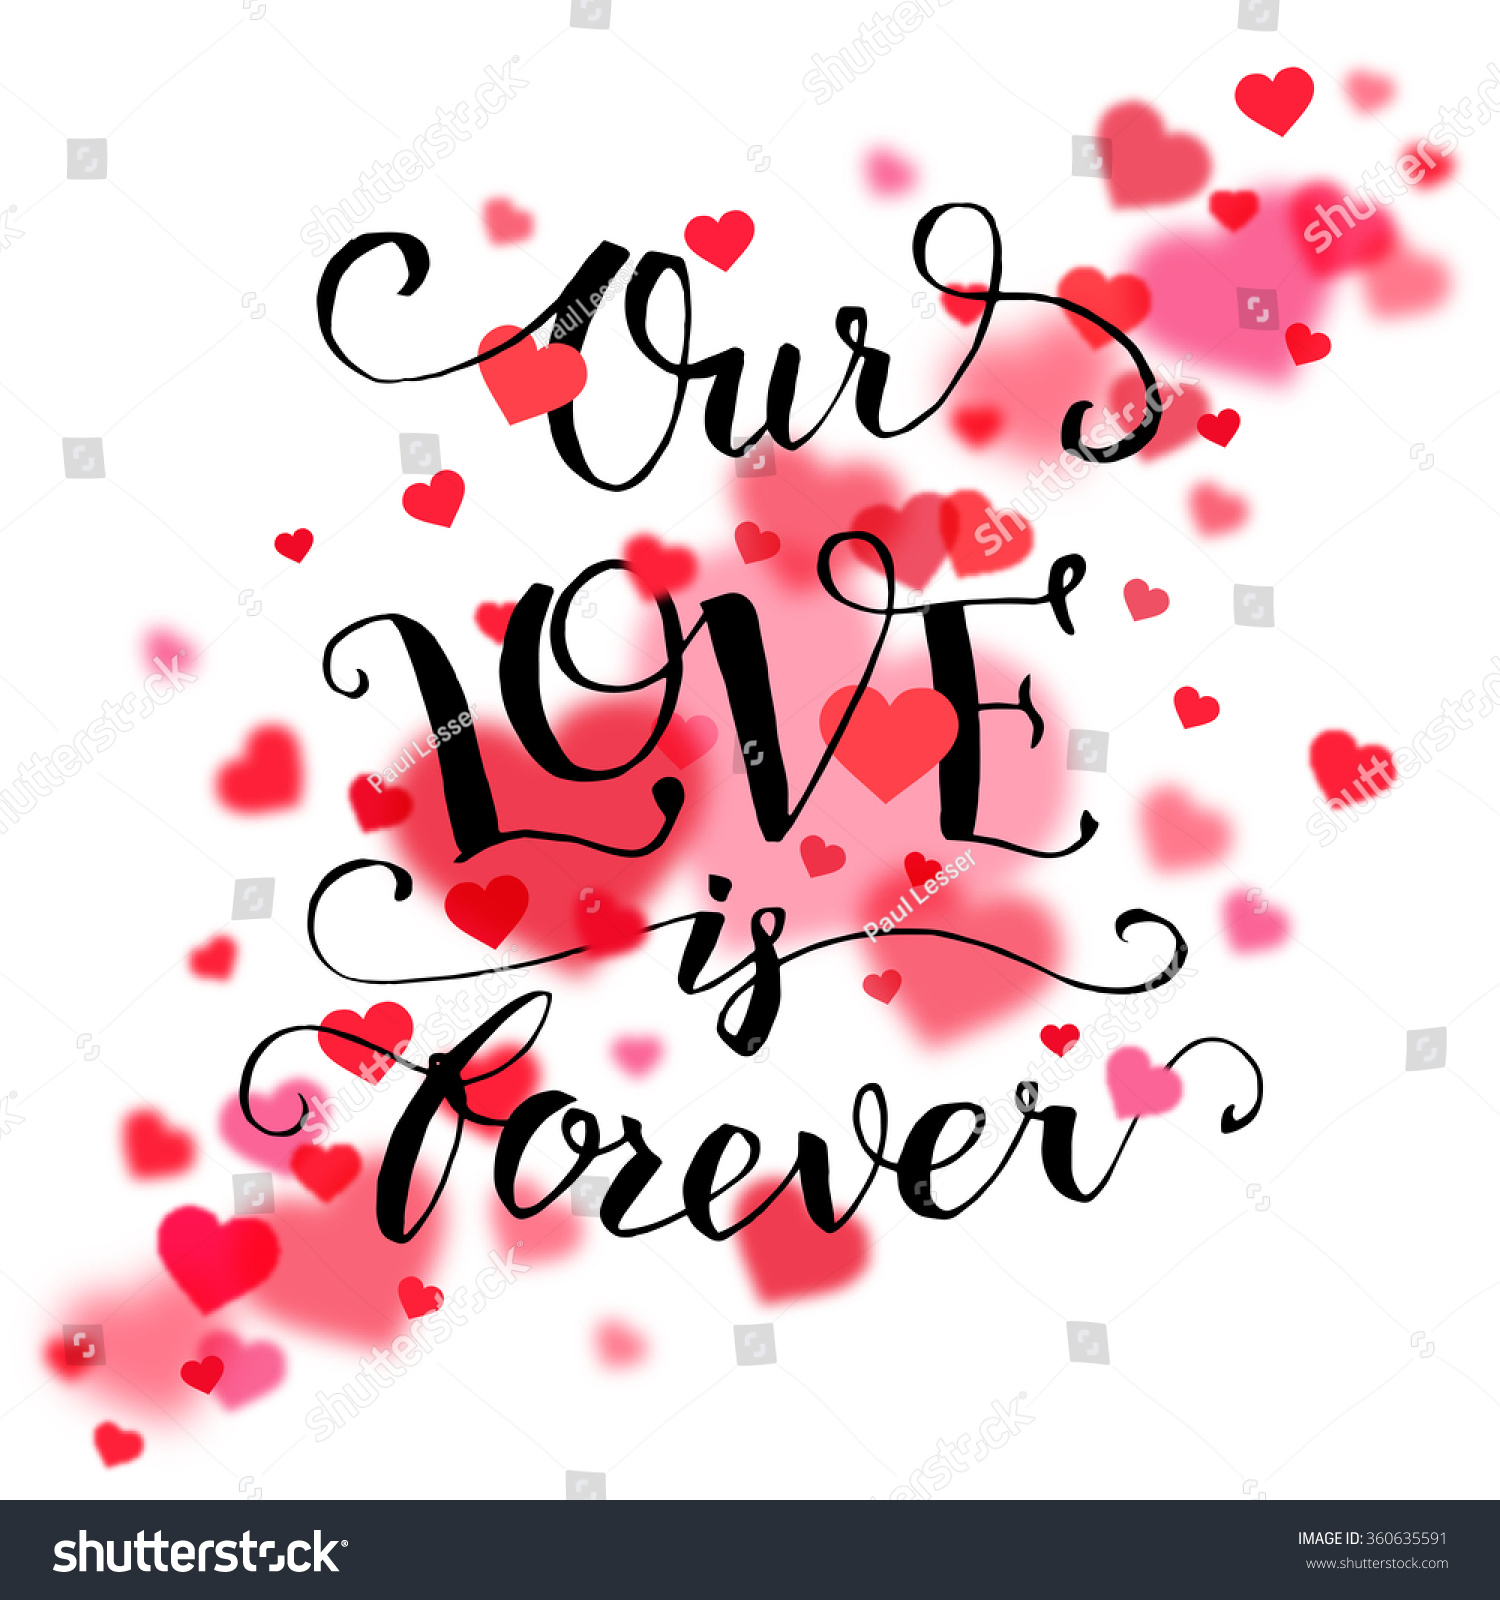 Our love is forever Calligraphy quote handwritten text Valentine s day or wedding typography